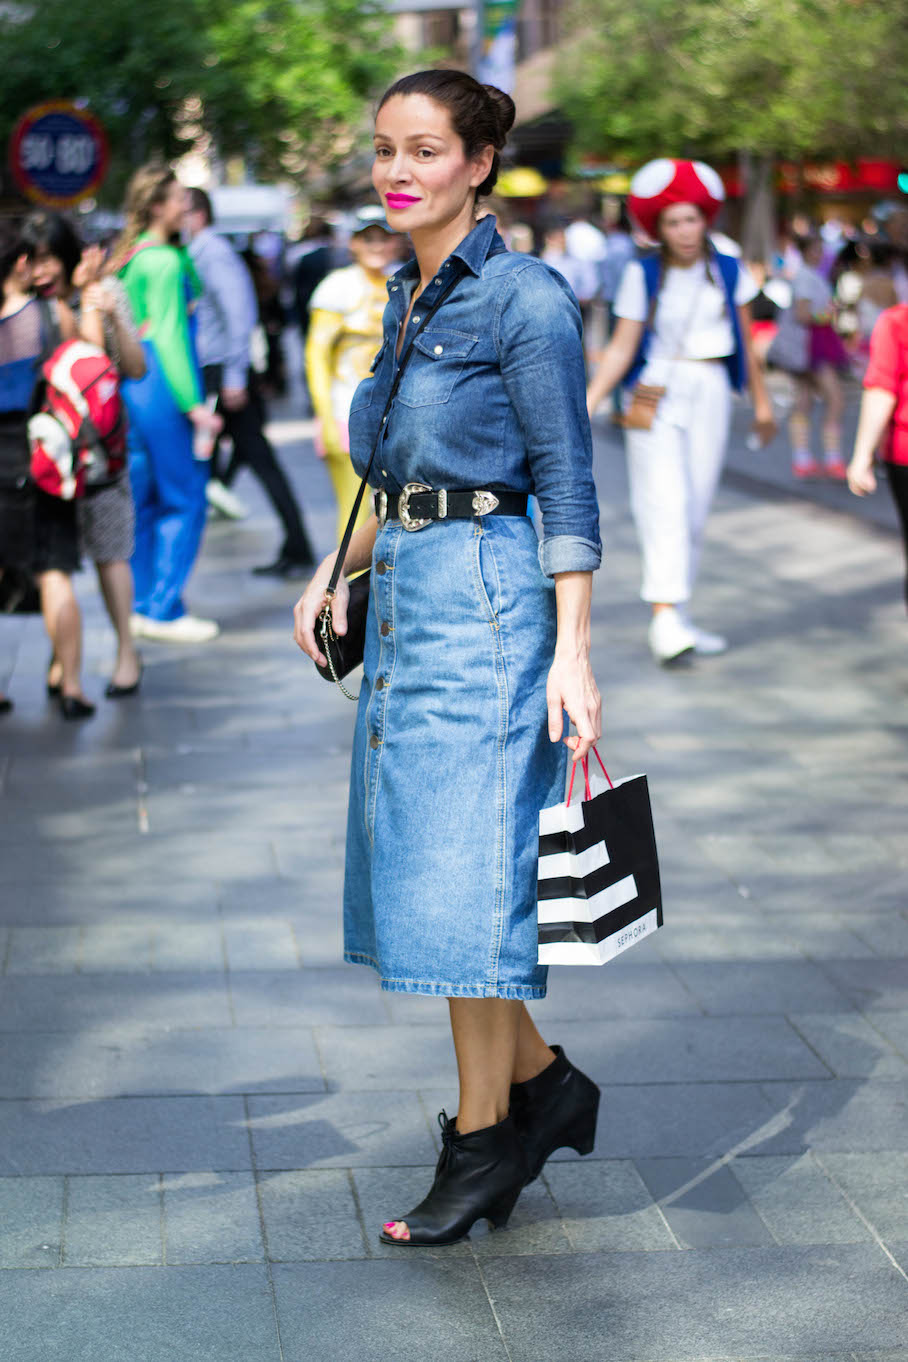 """NSW: Julianne Mosis, Skin Therapist, Pitt St. """"My style depends on how the weather makes me feel."""" Photo: Alice Scriberras"""